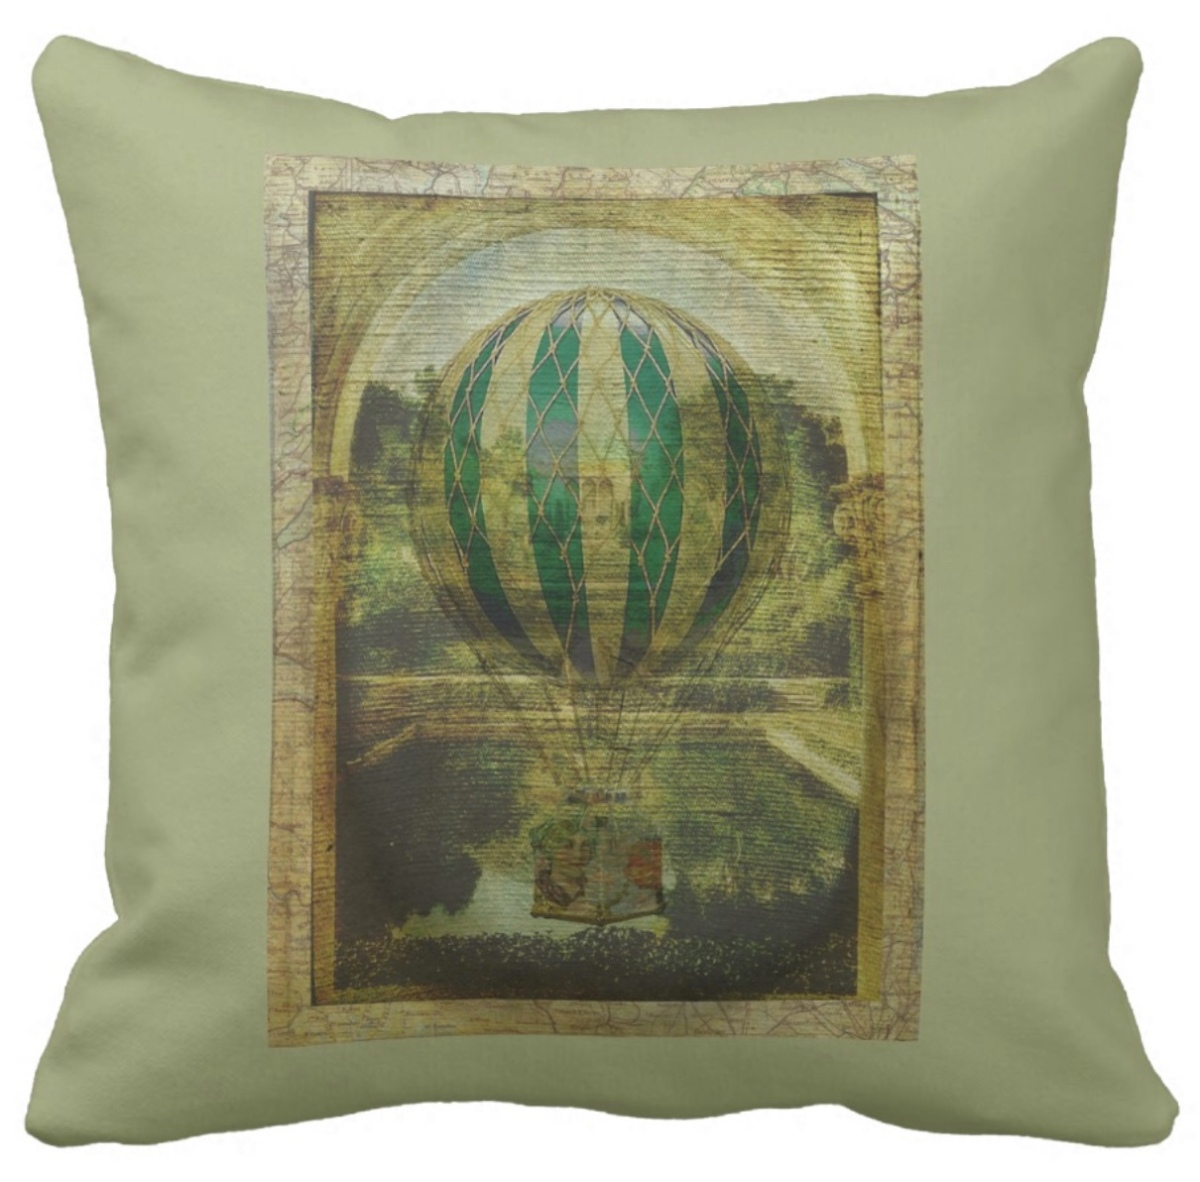 First Night Design | Hot Air Balloon Voyage Cushion #Sold!